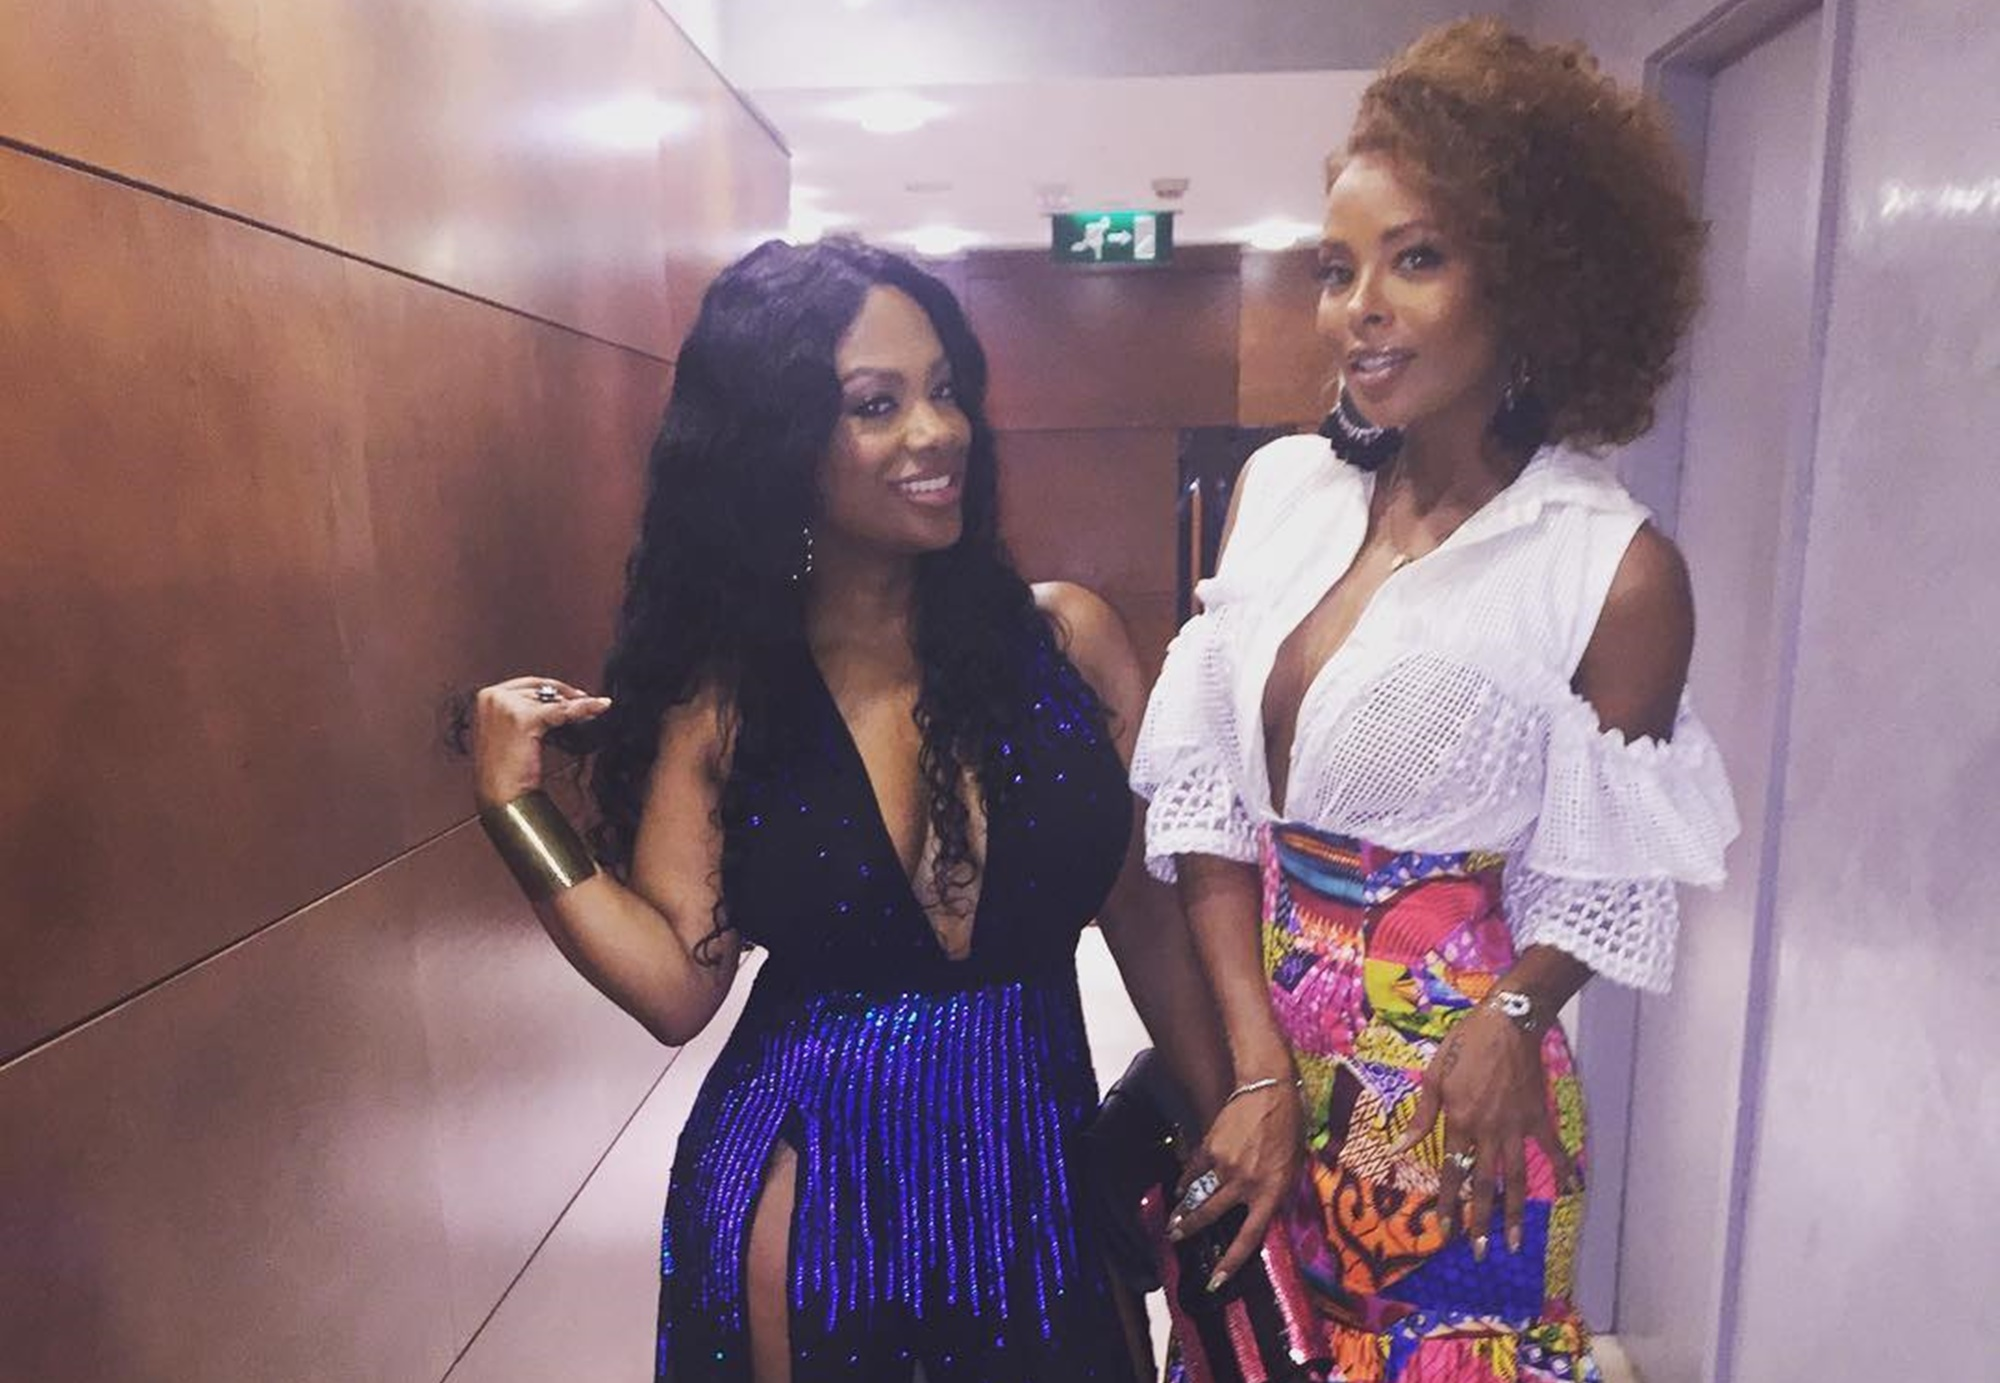 Kandi Burruss Gushes Over Eva Marcille Who Brought Her Baby Bump To Kandi's 'Welcome To The Dungeon' Show